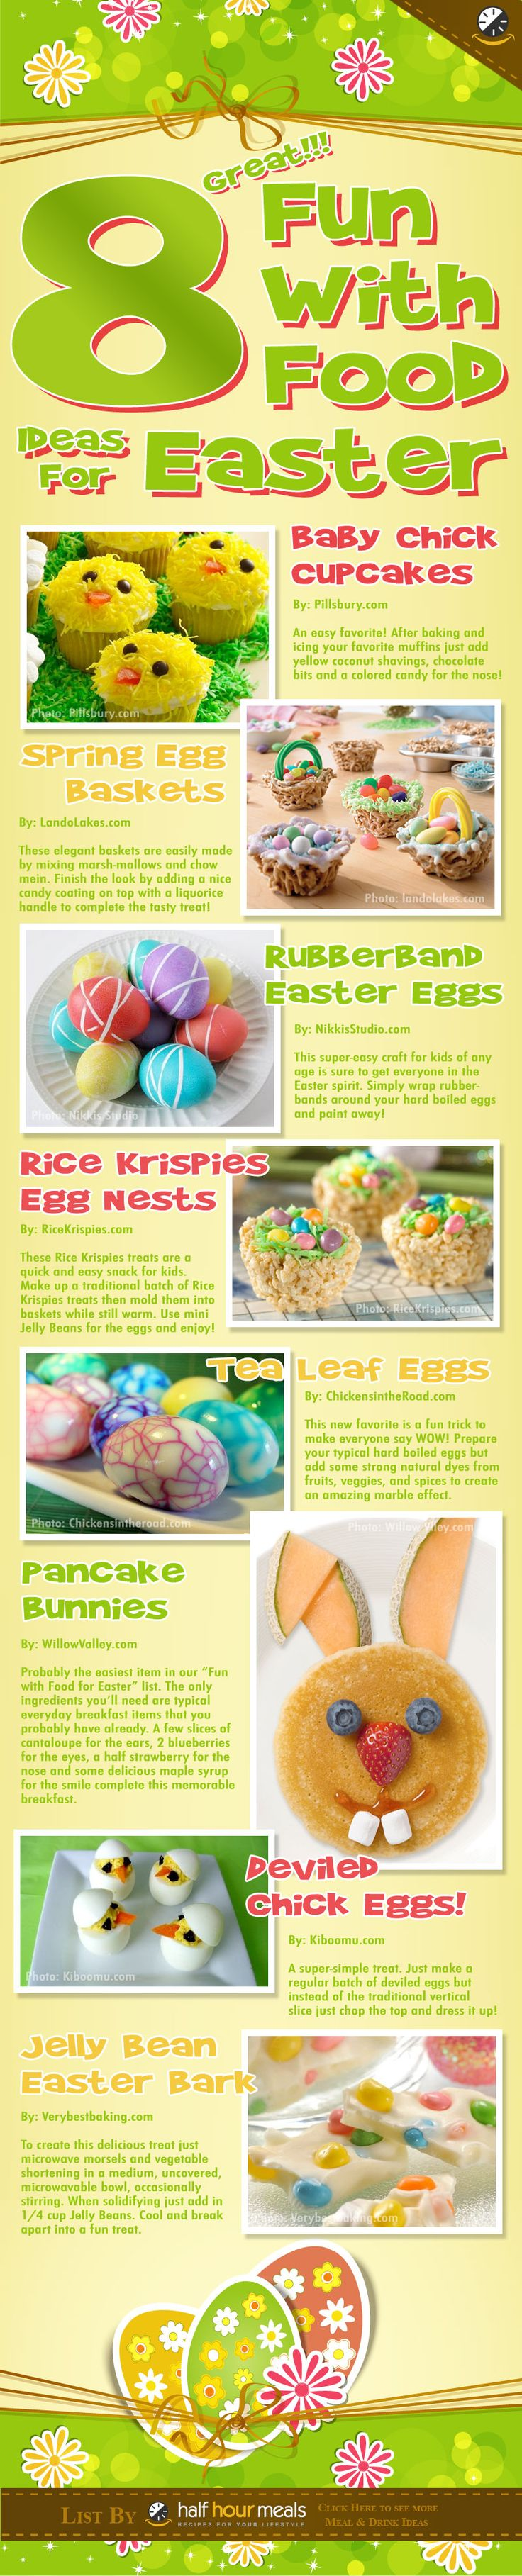 #Easter fun #food and #snack pinned by BentoUSA.com